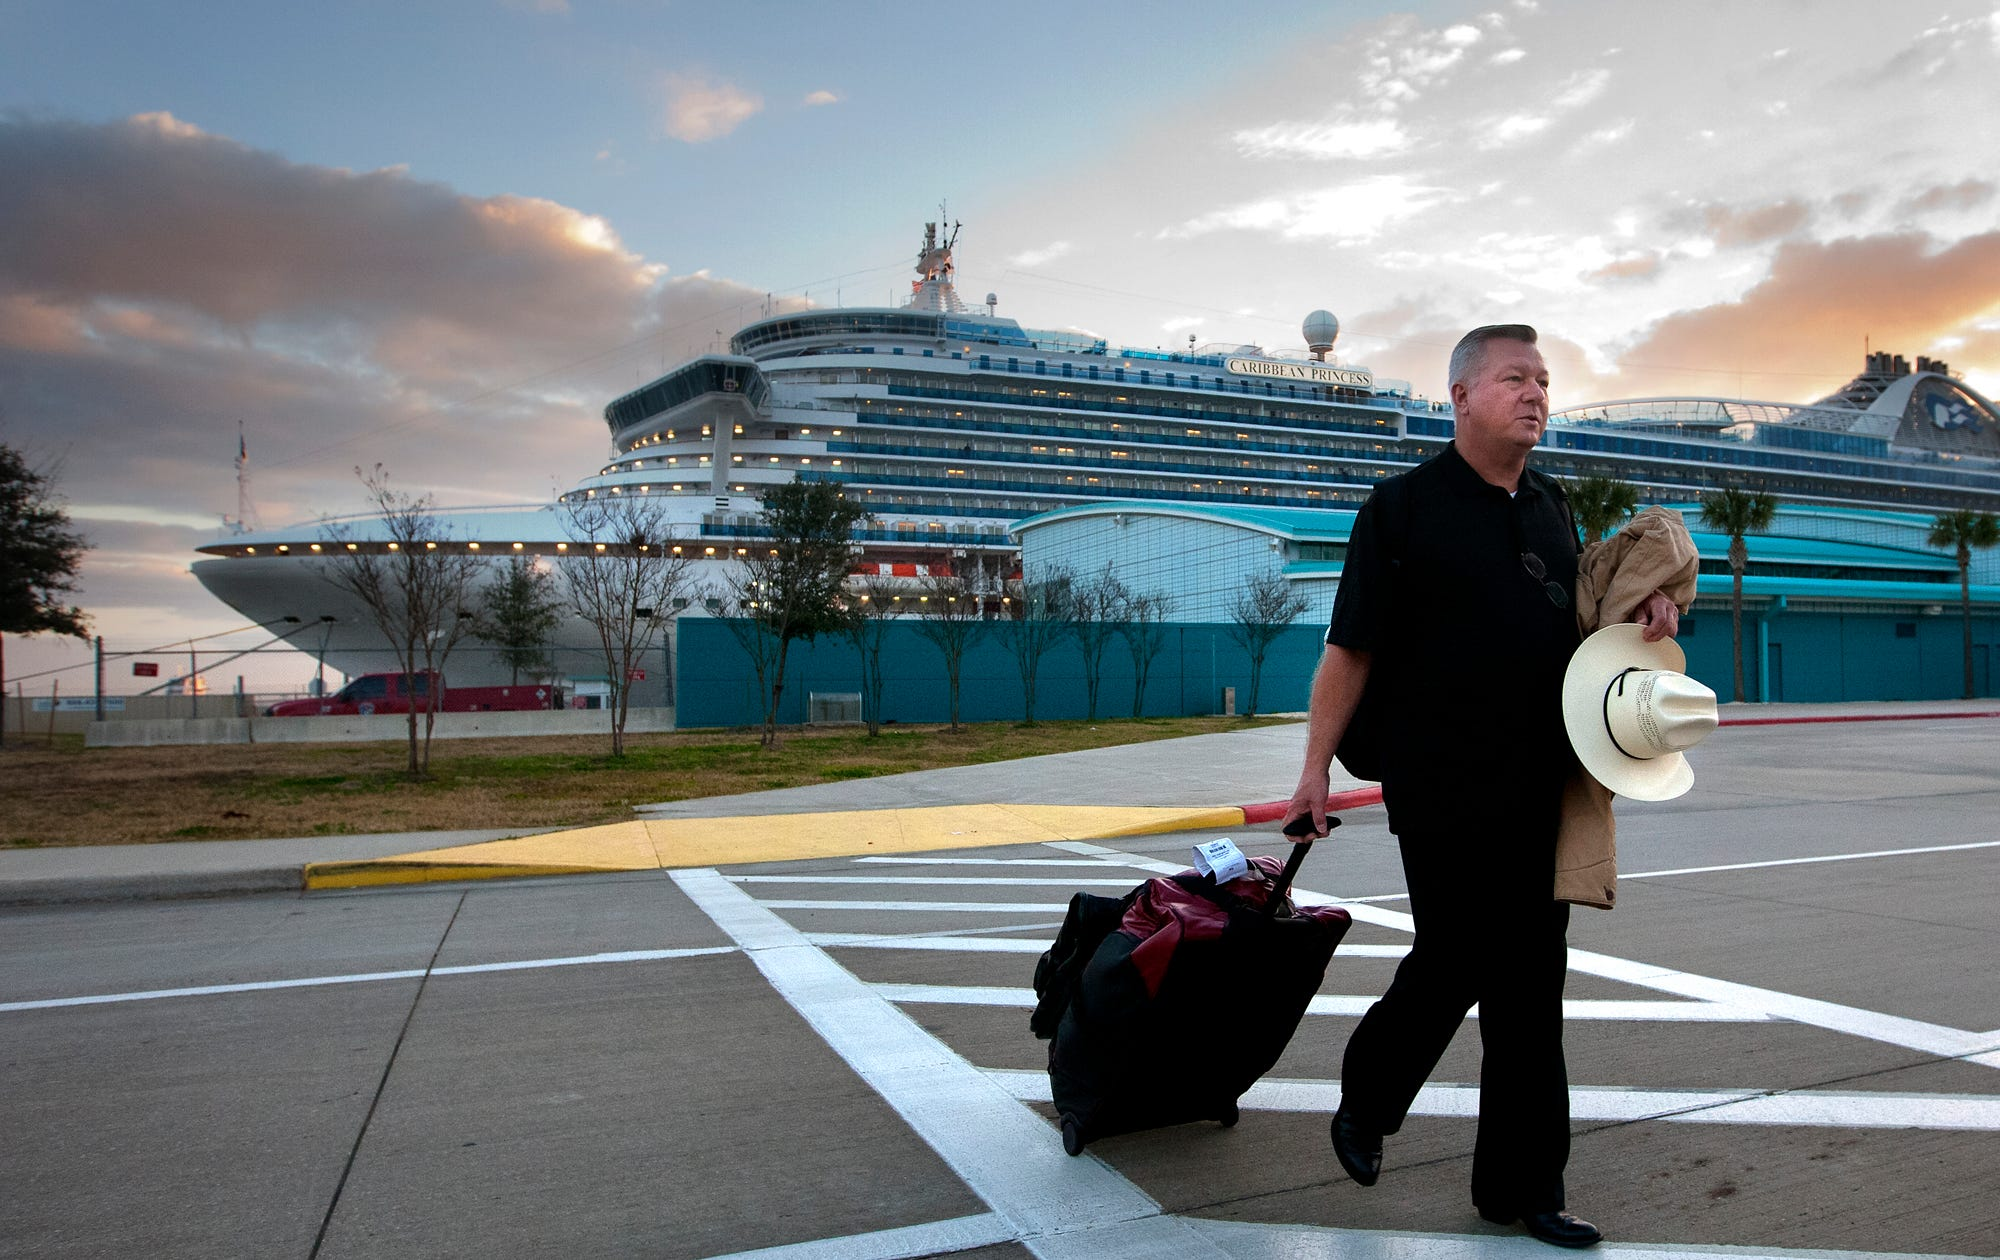 Princess cruise ship forced to turn around after over 300 sickened with norovirus